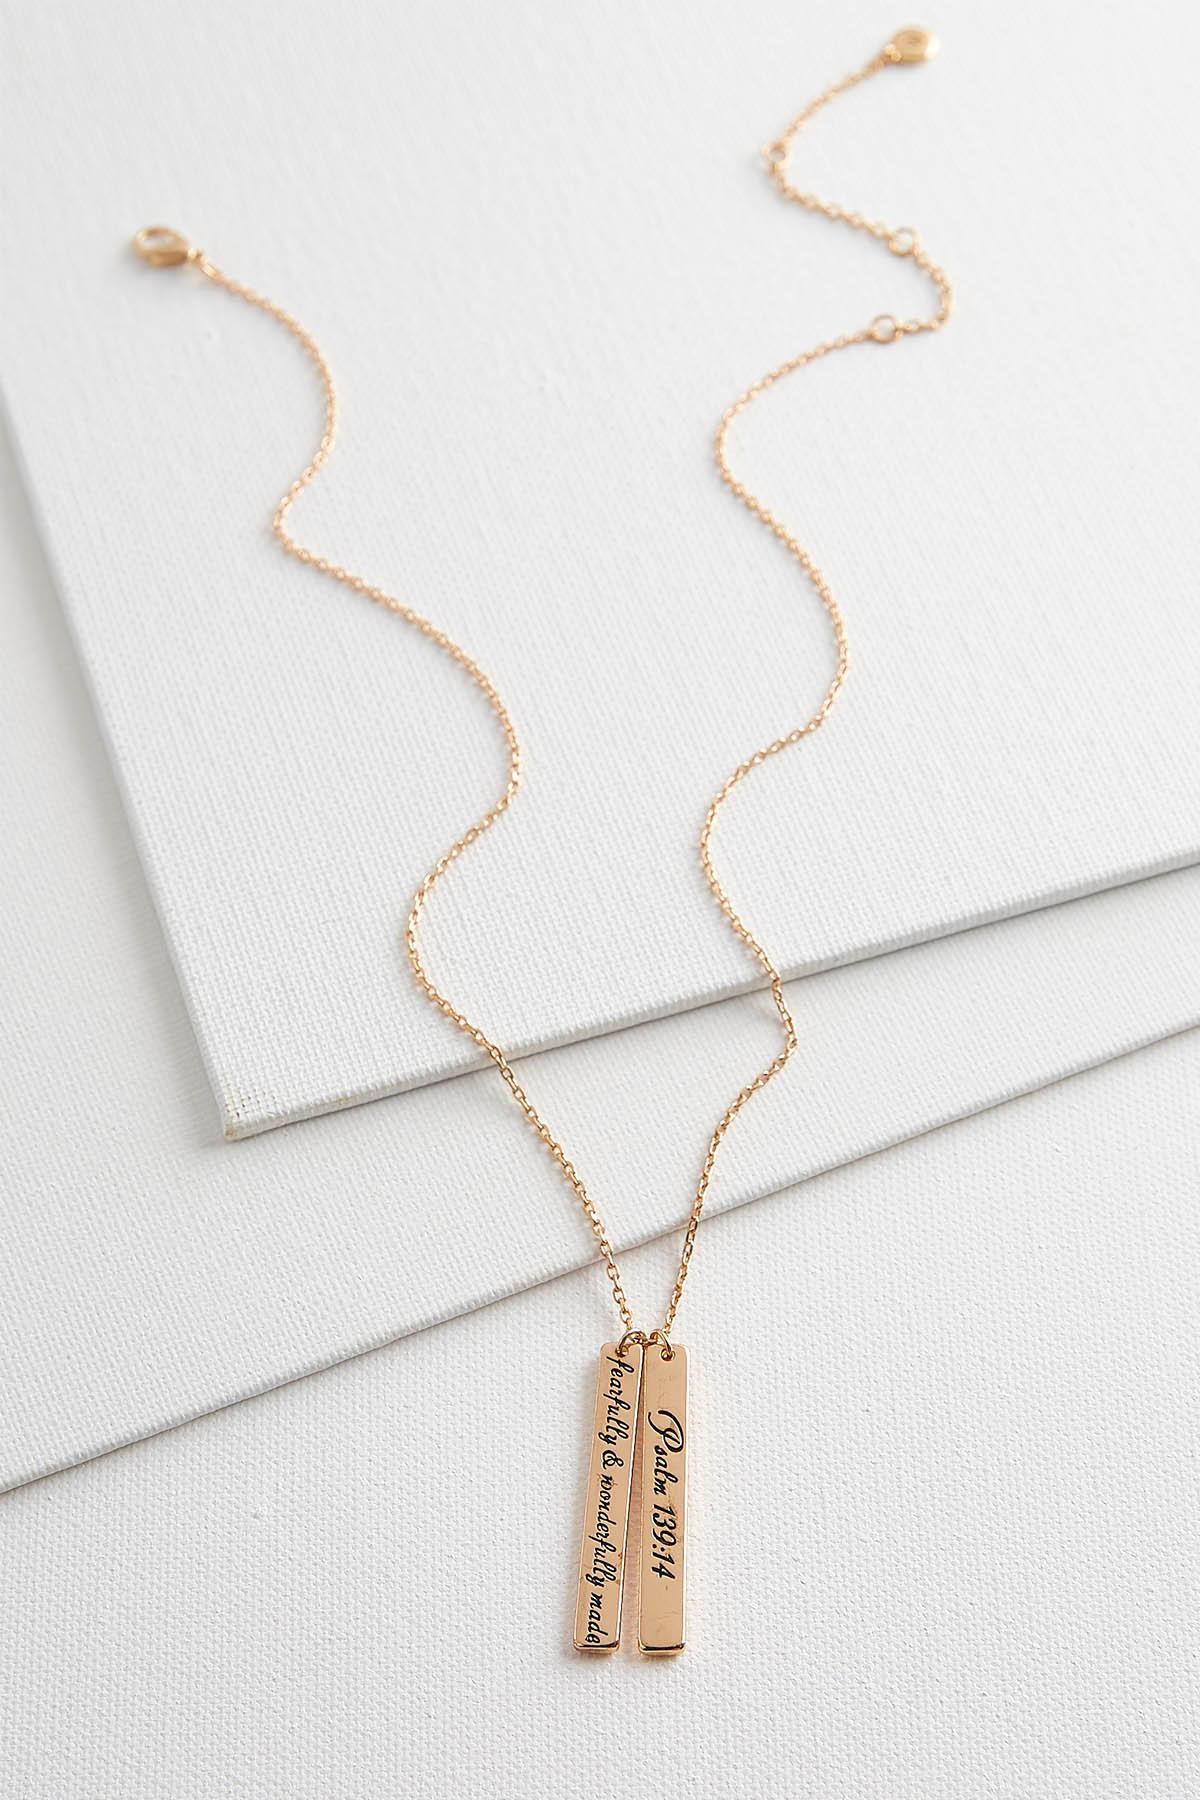 Fearfully Made Double Bar Necklace